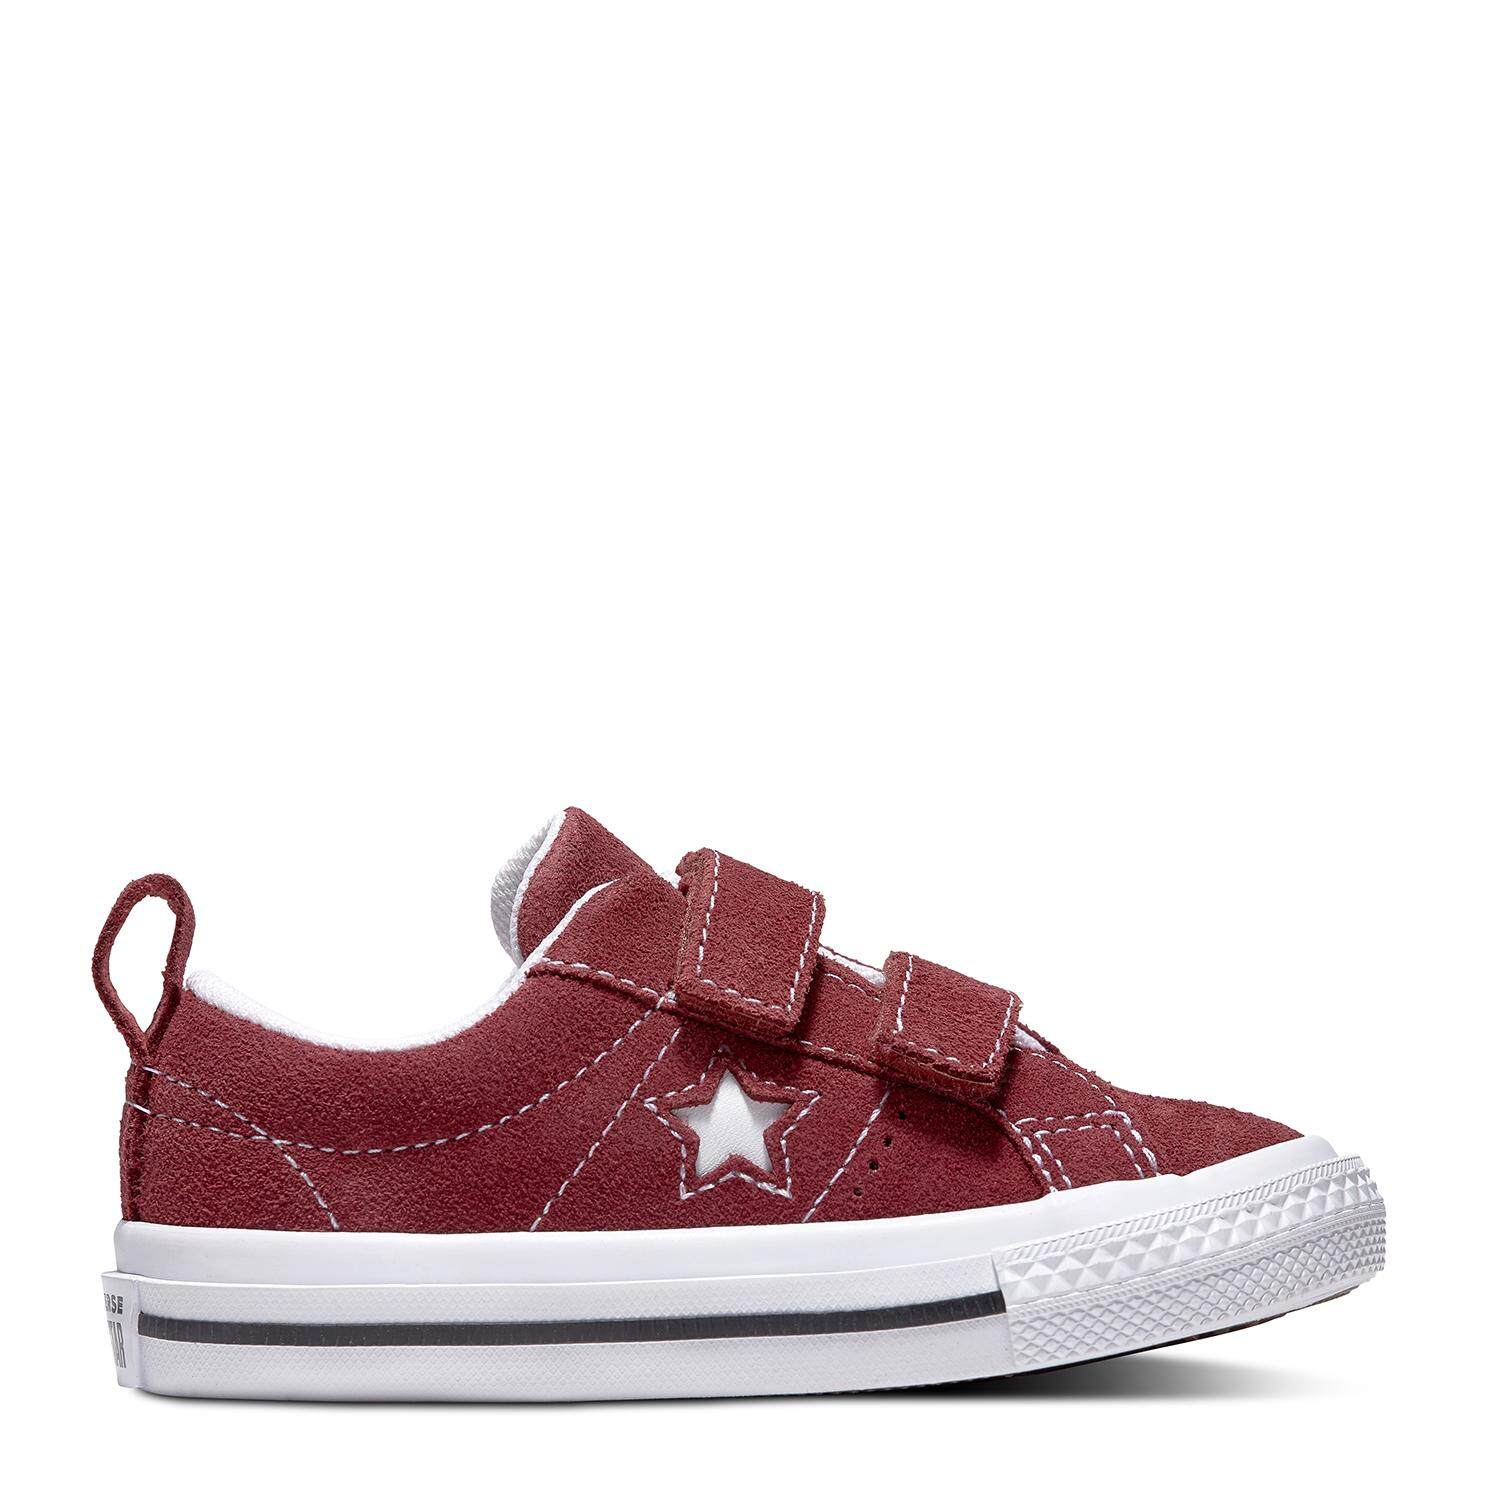 Converse Sneakers For The Best Price In Malaysia